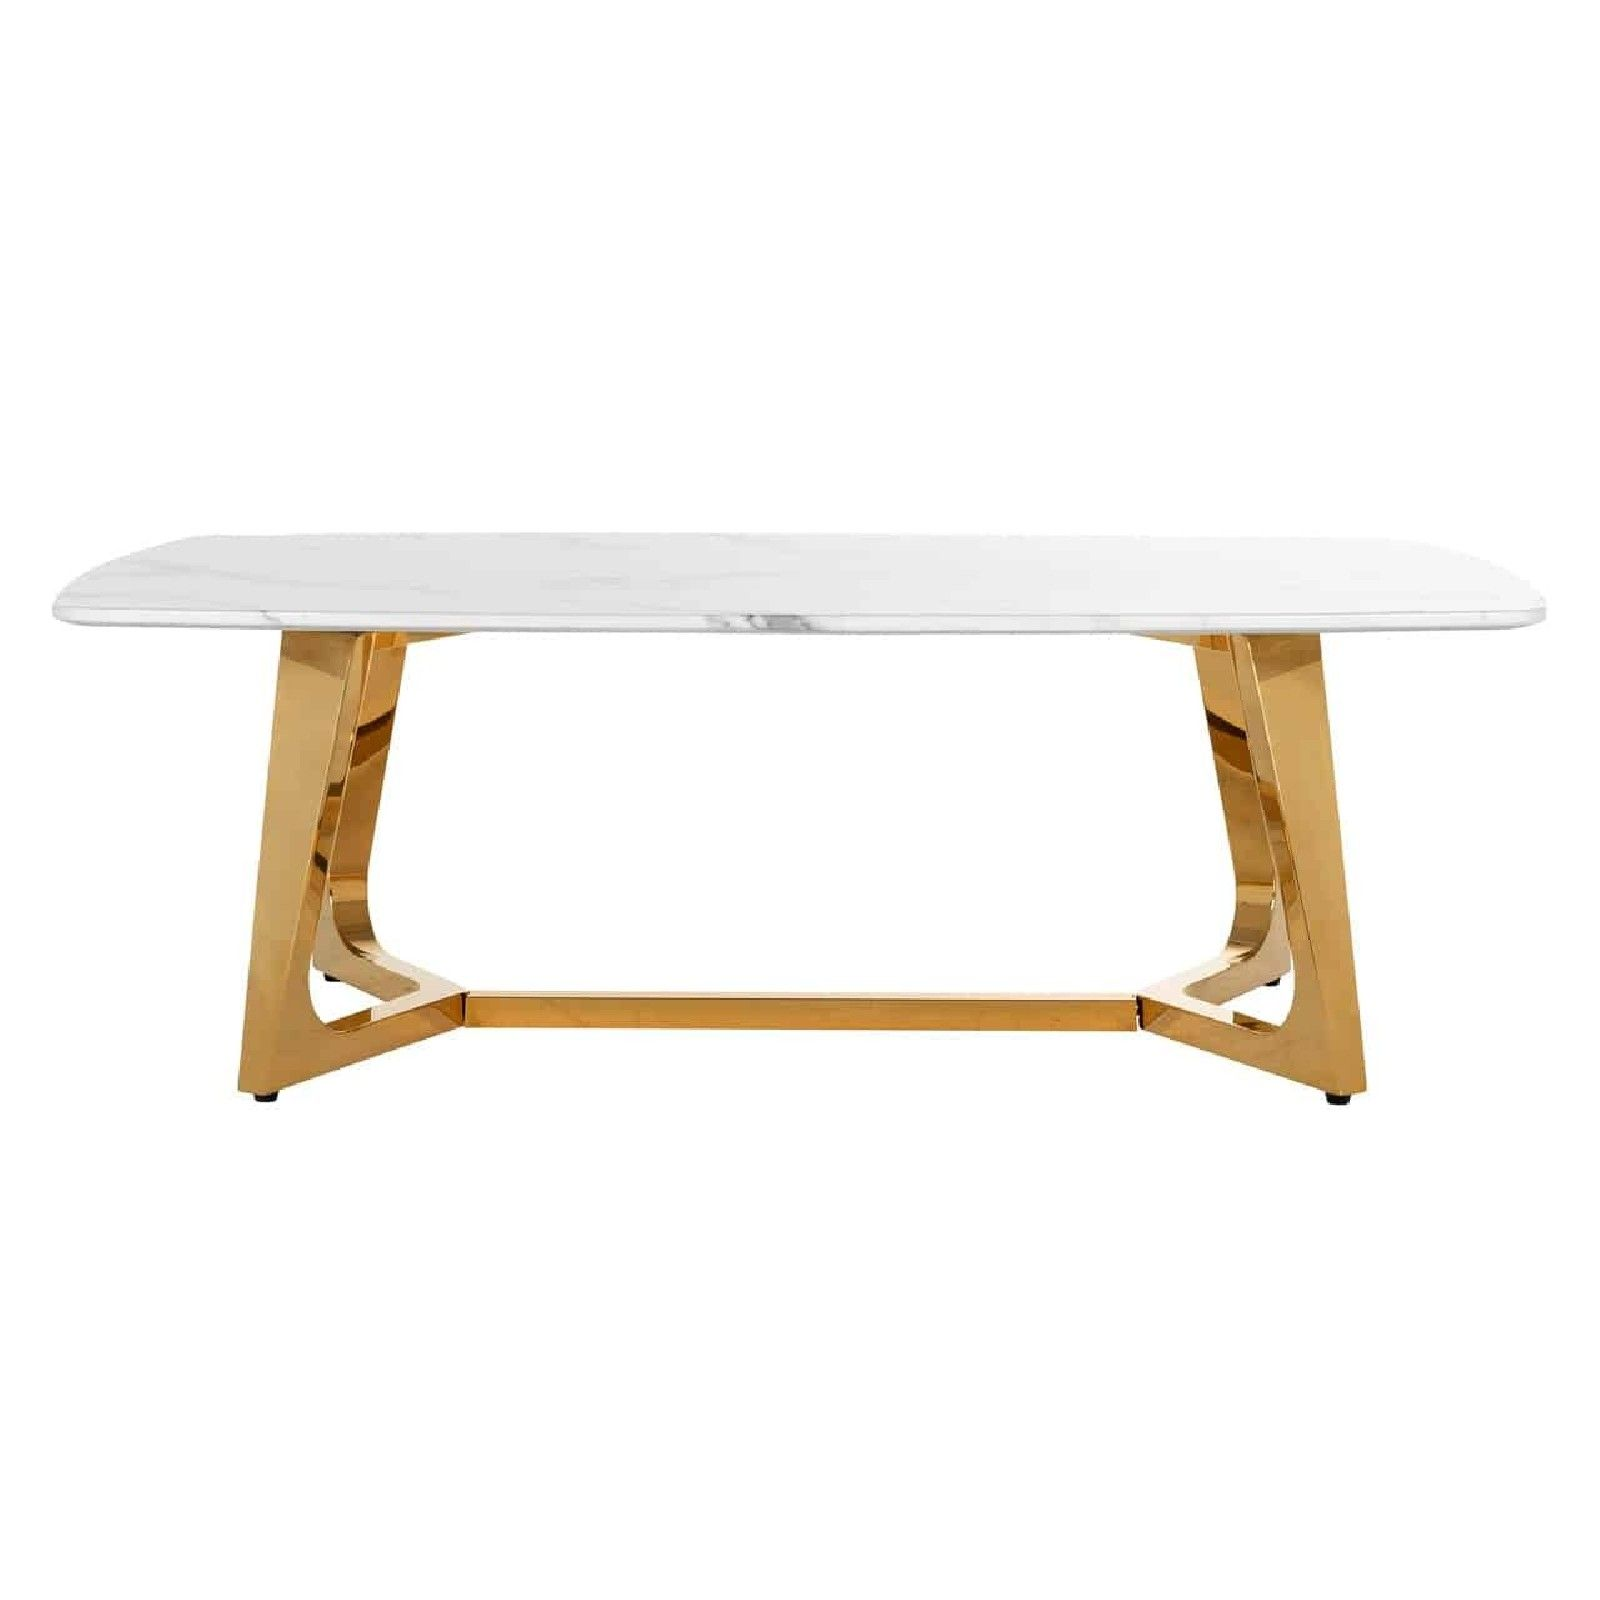 Table basse ovale - Or et marbre blanc